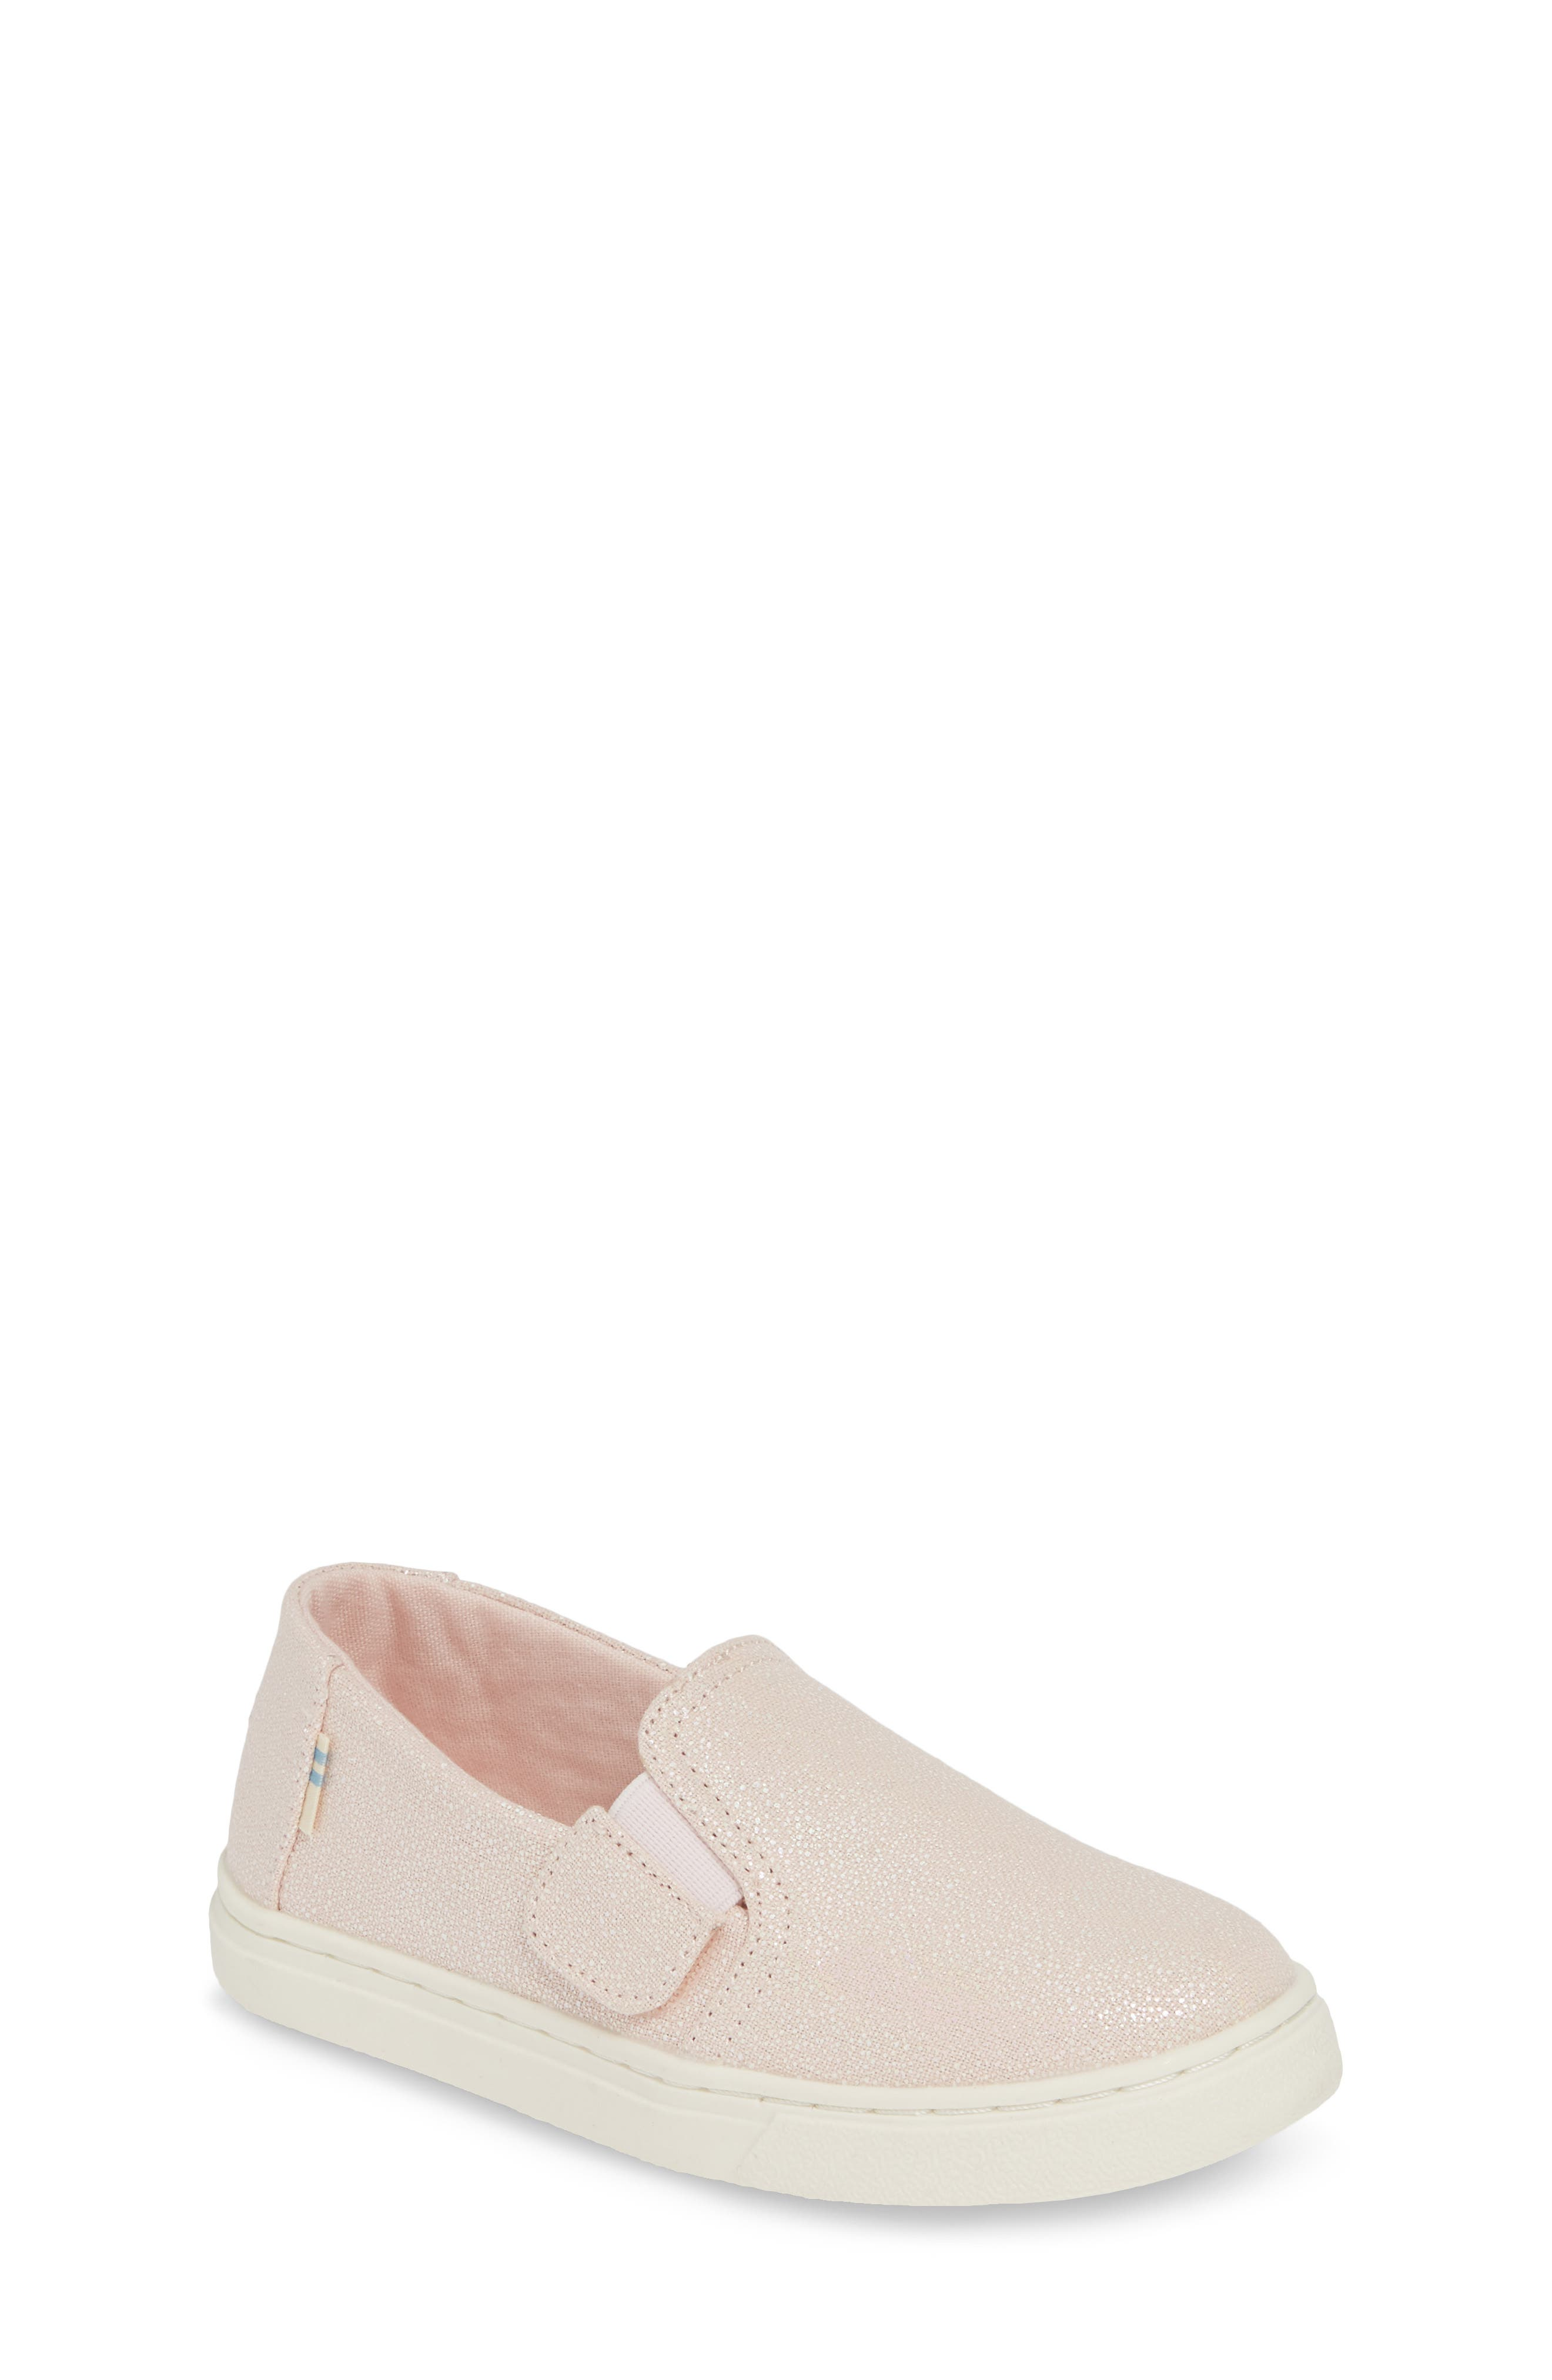 Baby girl toms sale